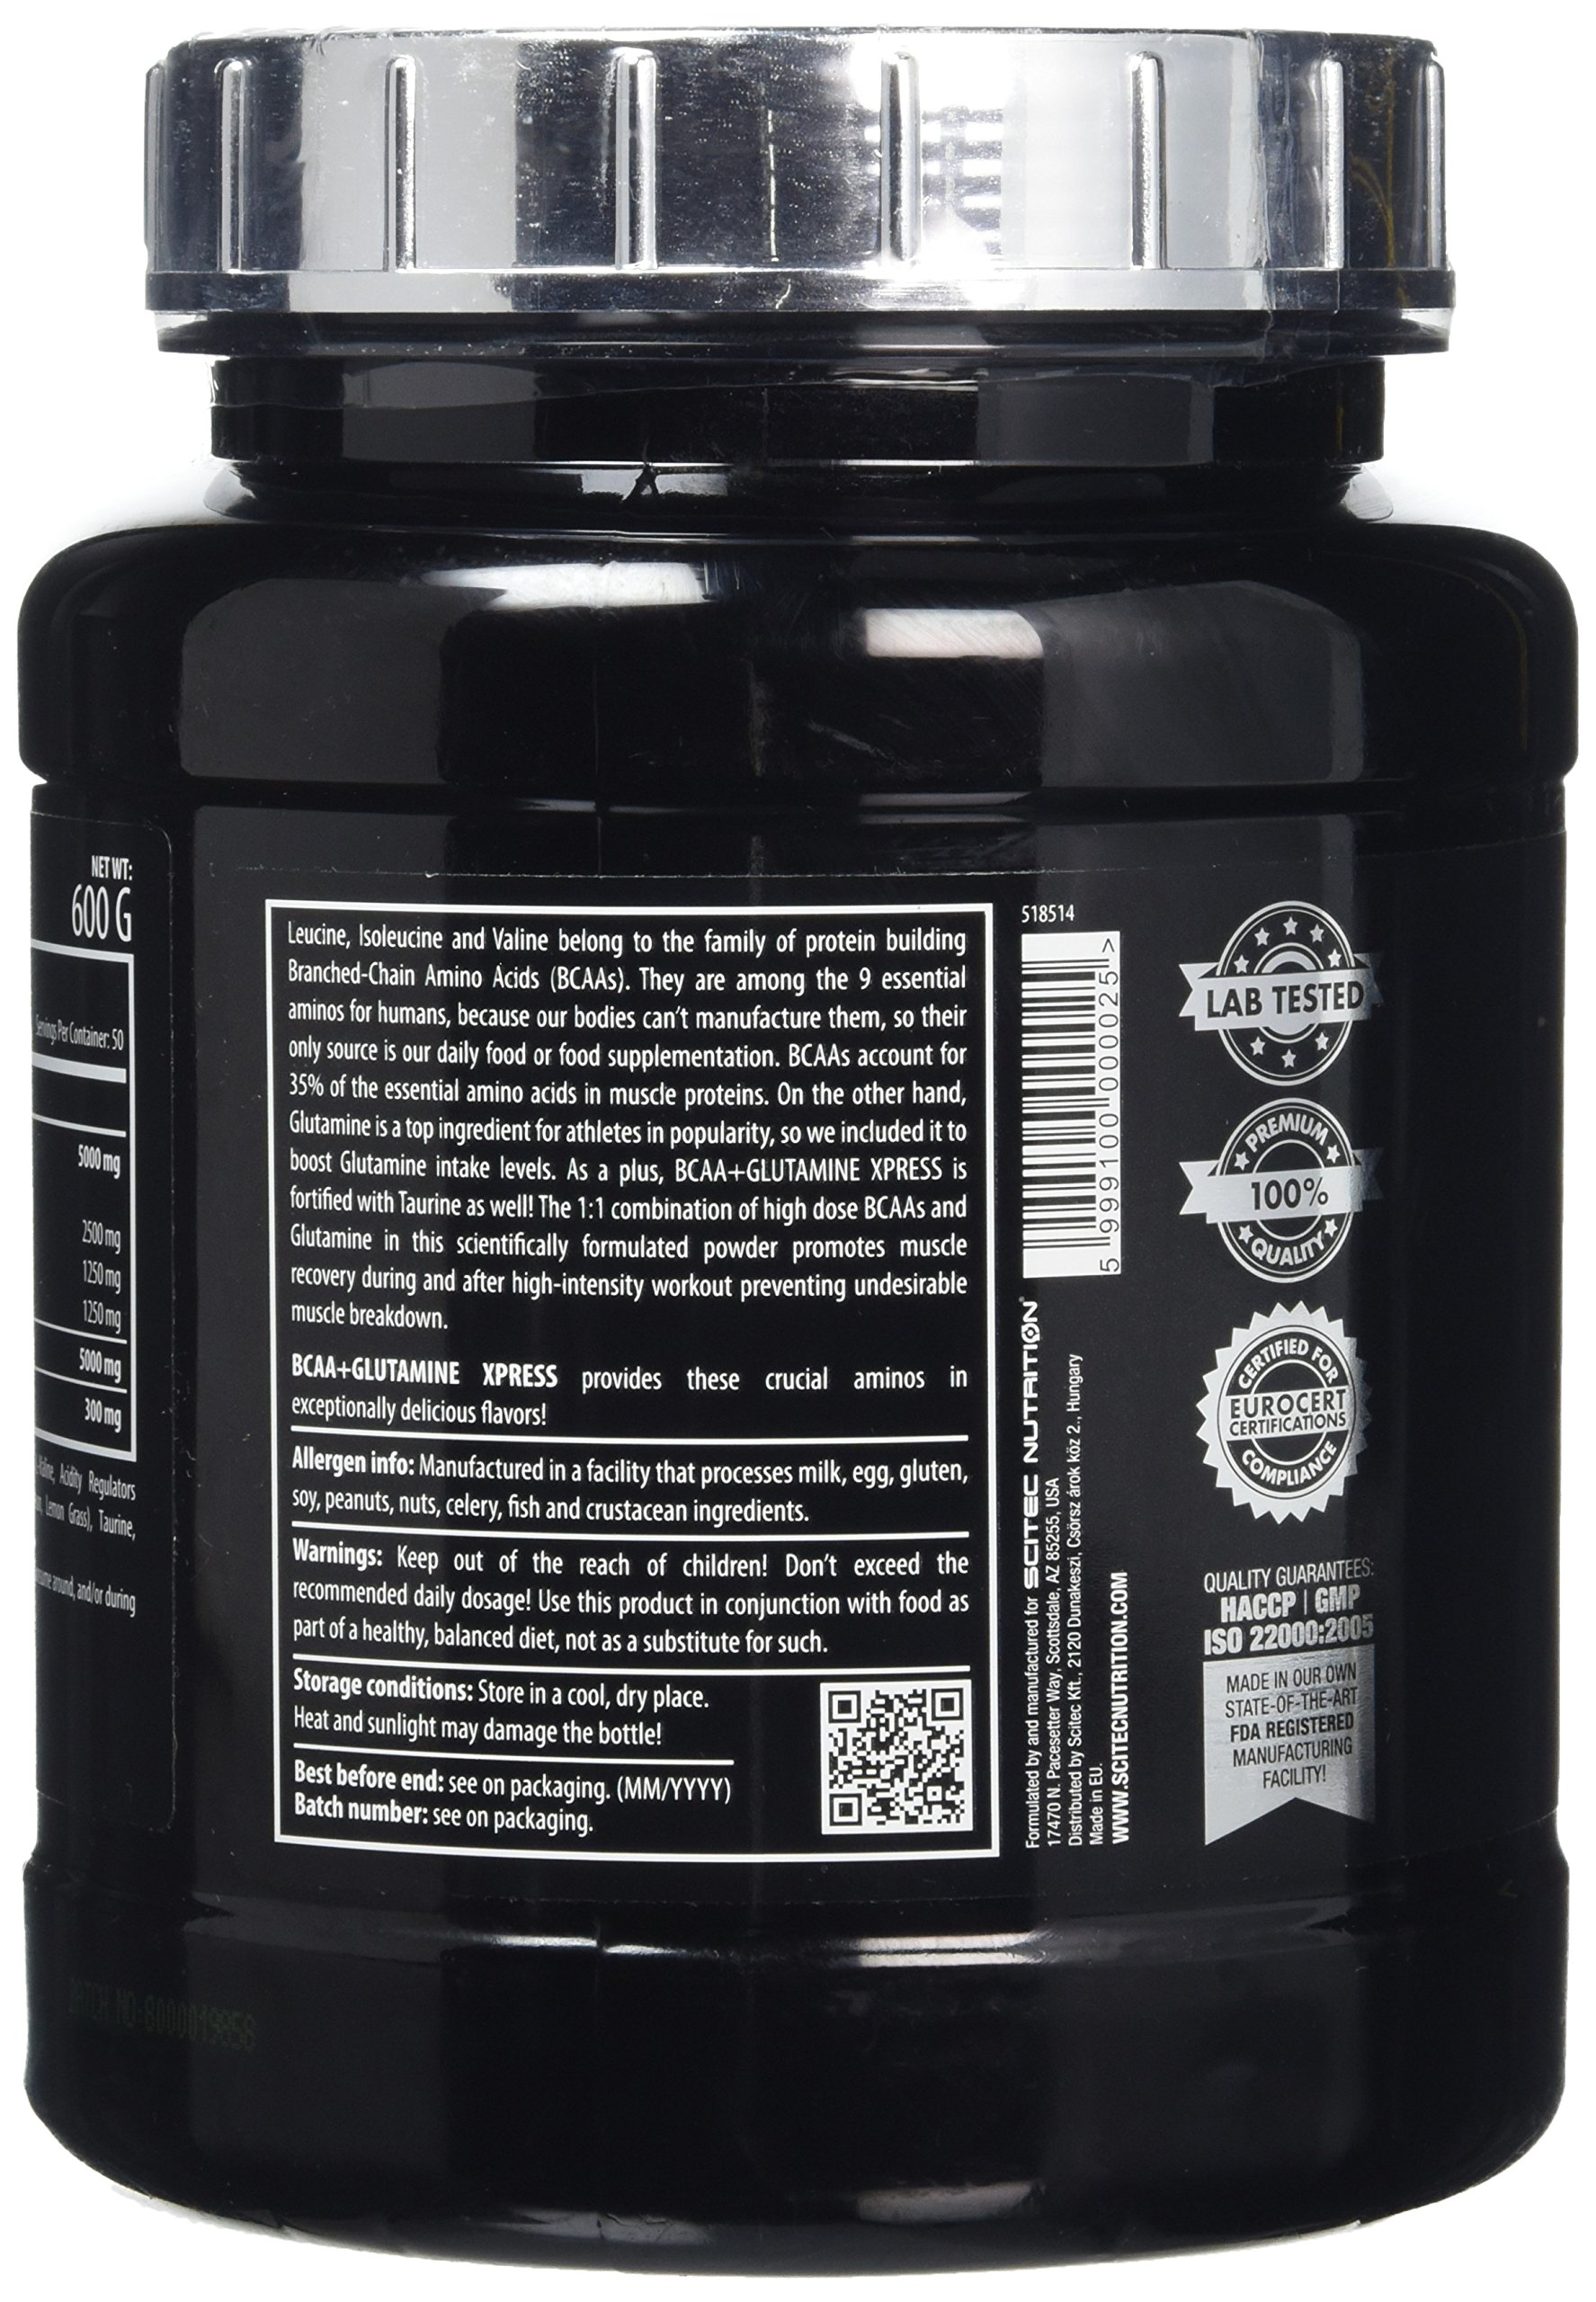 91S5znyjQkL - Scitec Nutrition BCAA + Glutamine Xpress, Fortified with Taurine, Sugar Free, 600 g, Lime